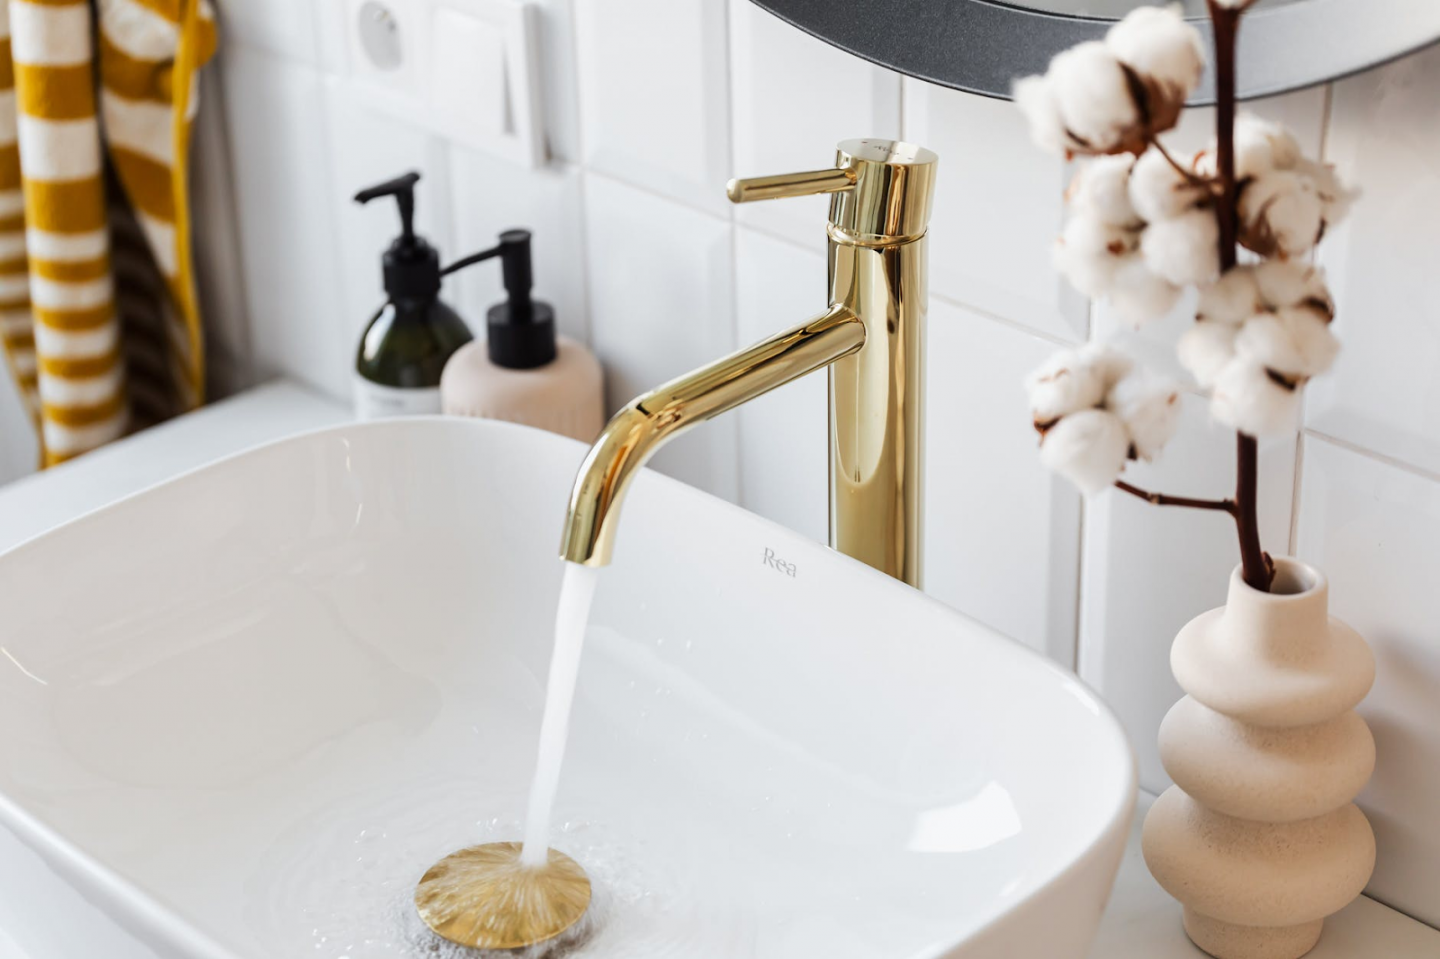 ideas for small bathrooms. Gold plated tap running water in white sink basin.